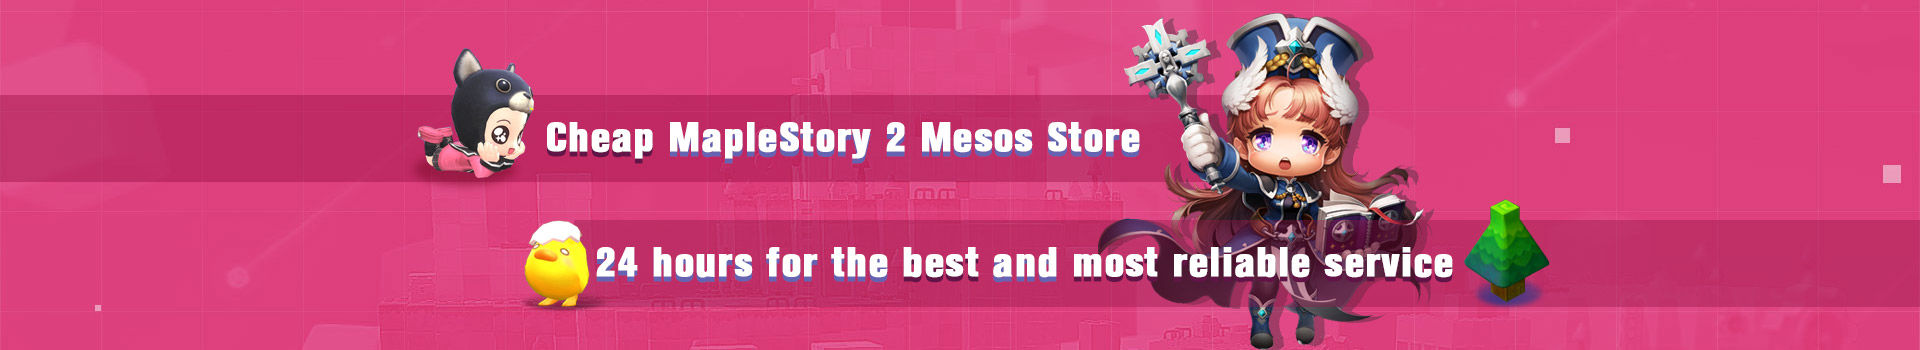 Cheap MapleStory 2 Mesos Store